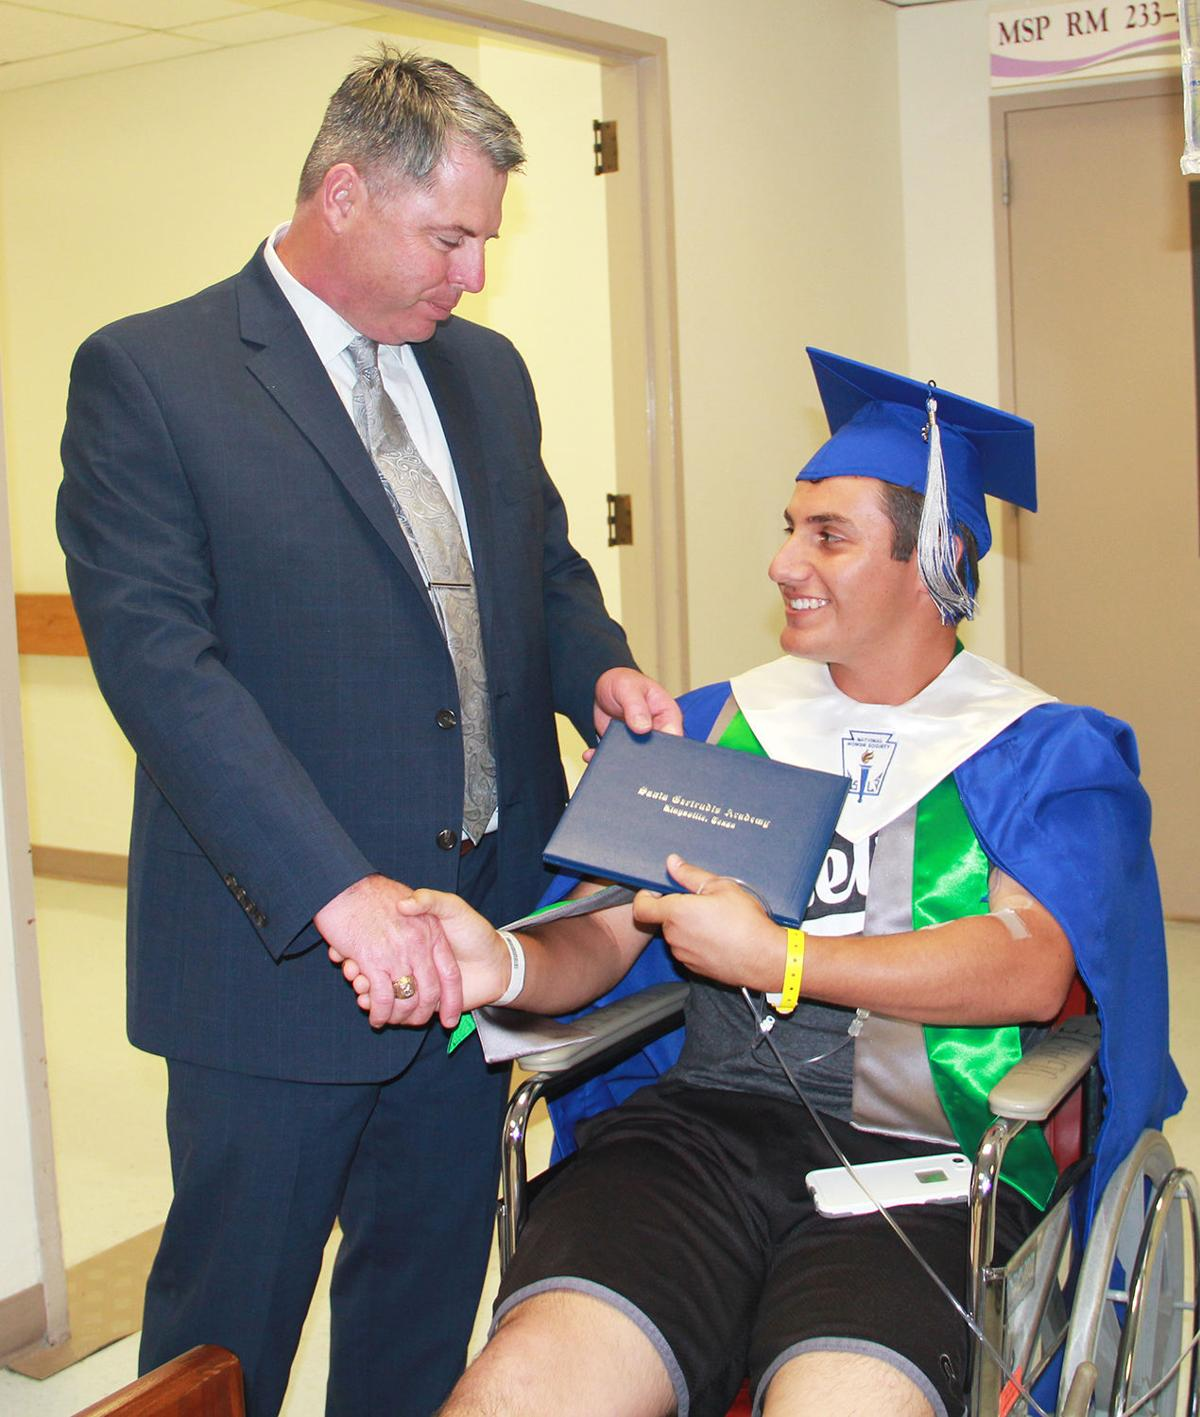 Academy rallies for graduate